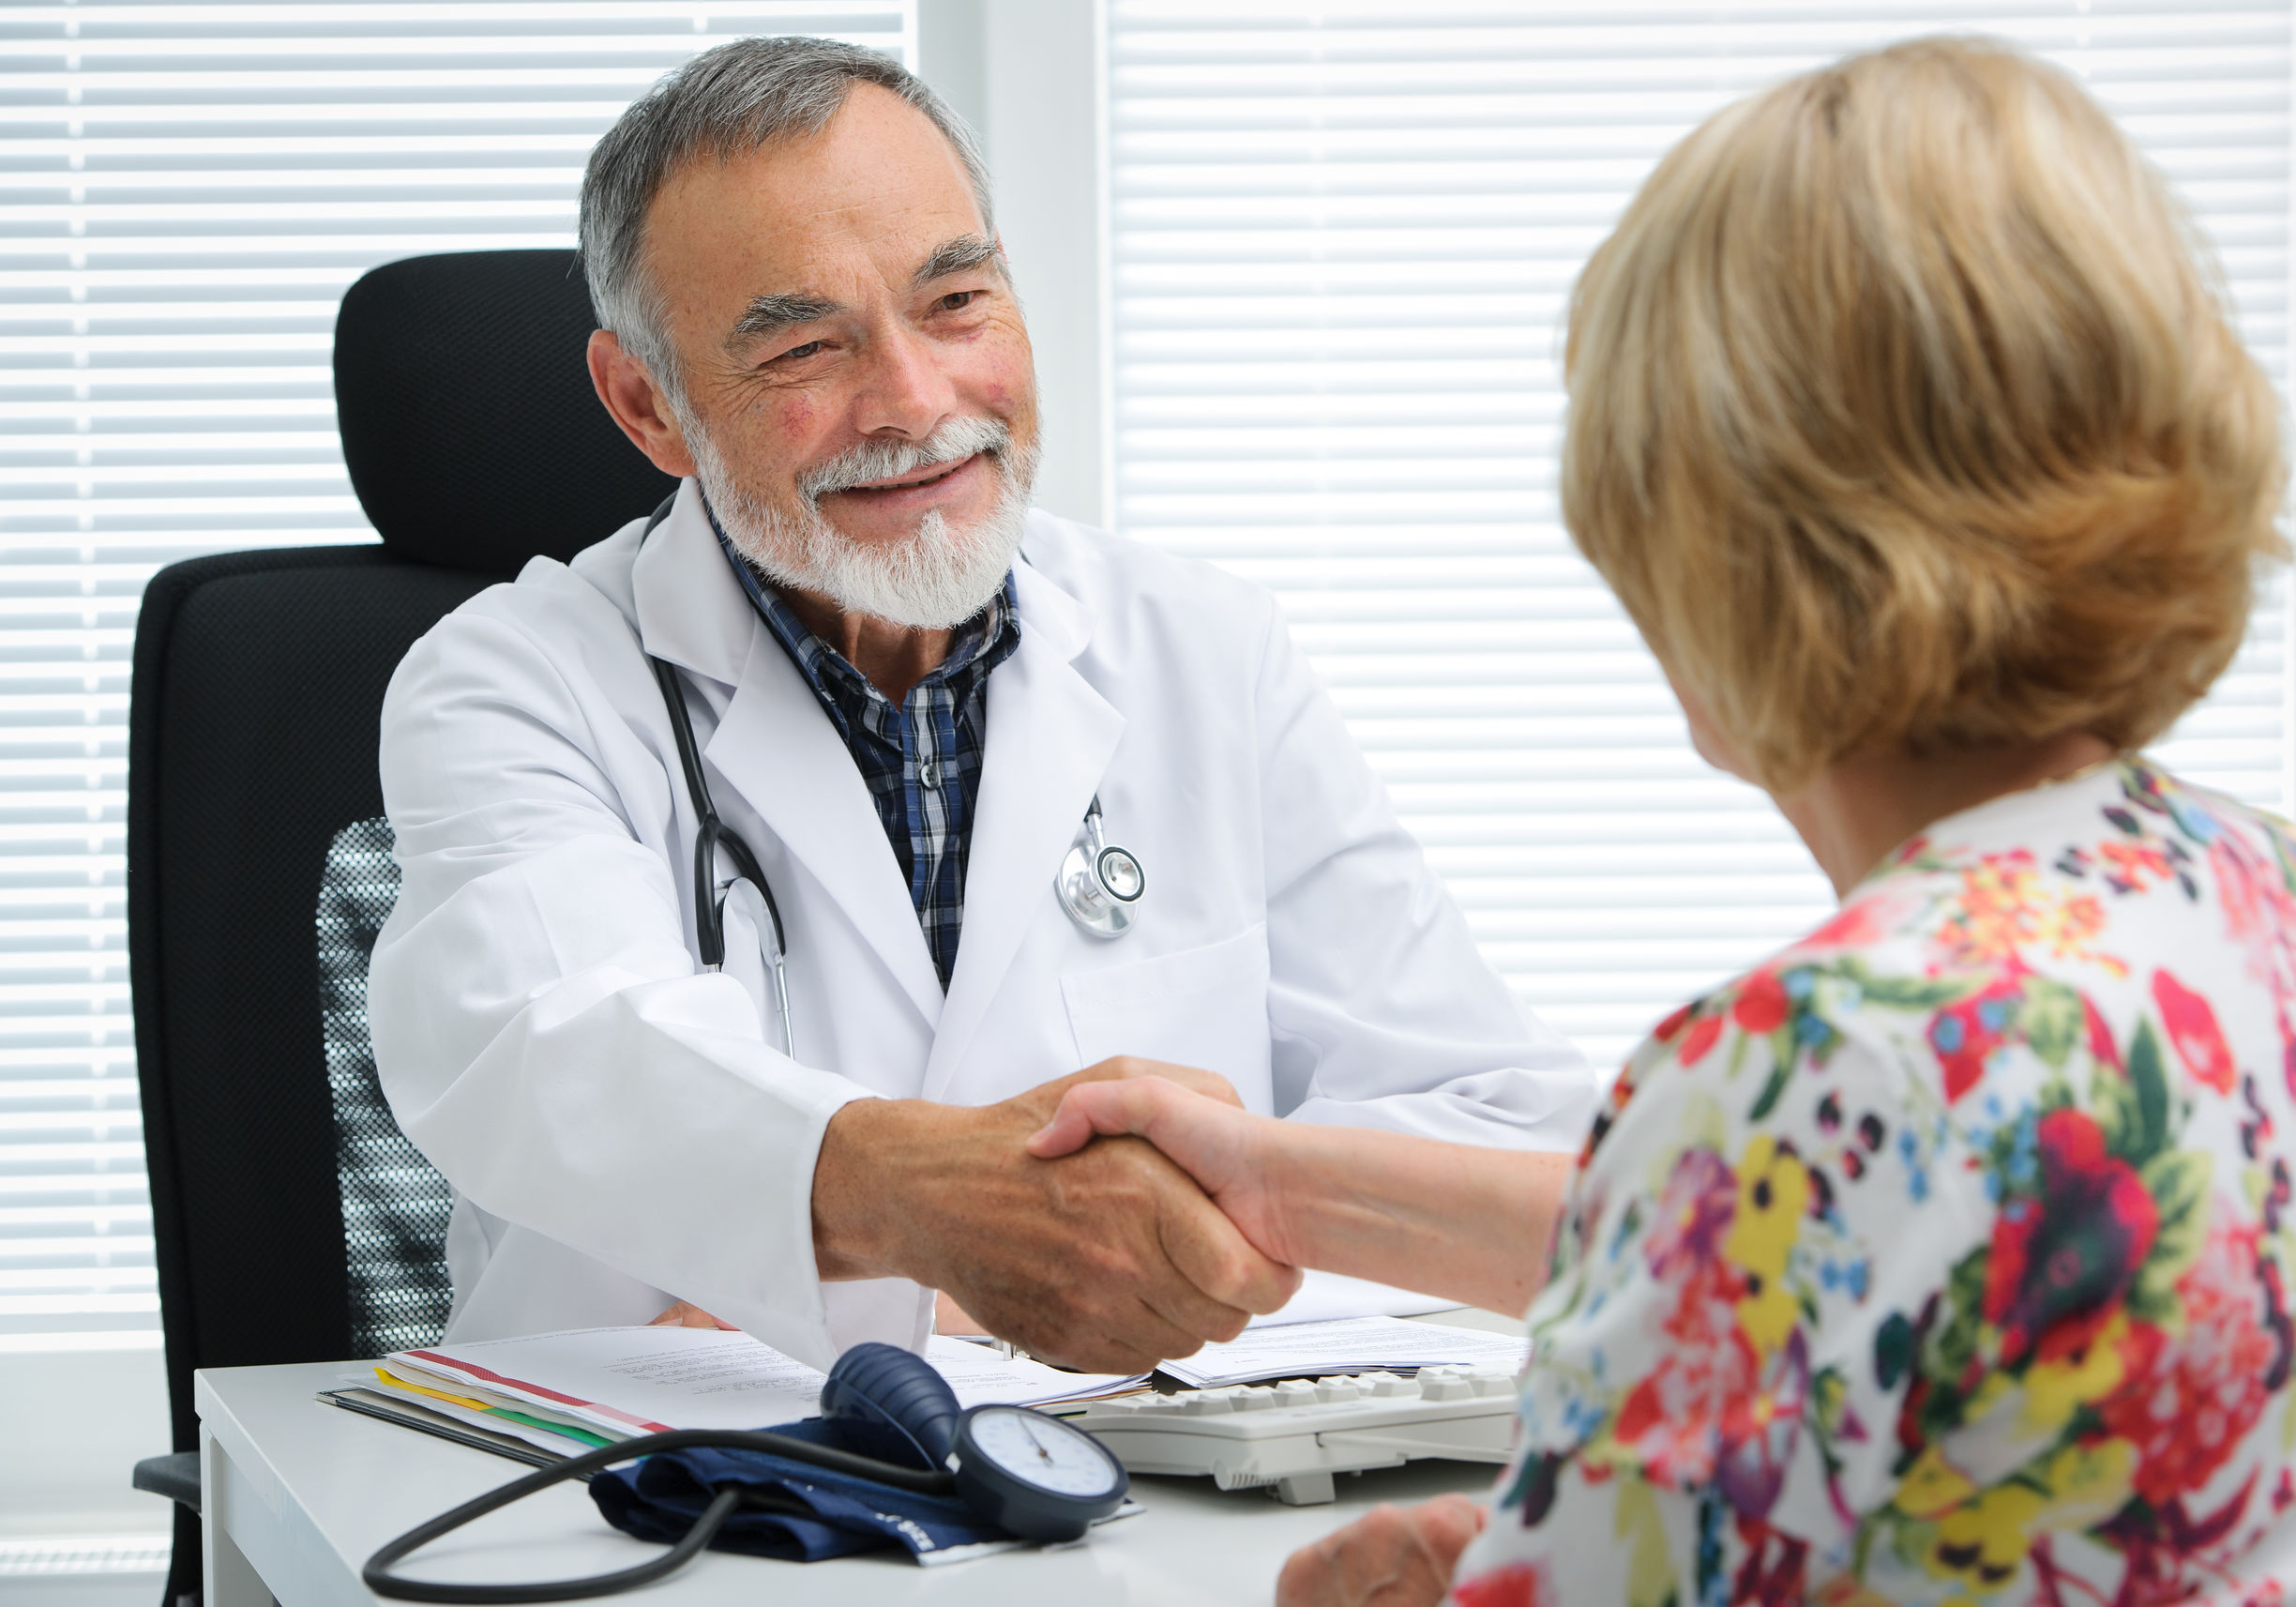 suboxone doctor caring for patient